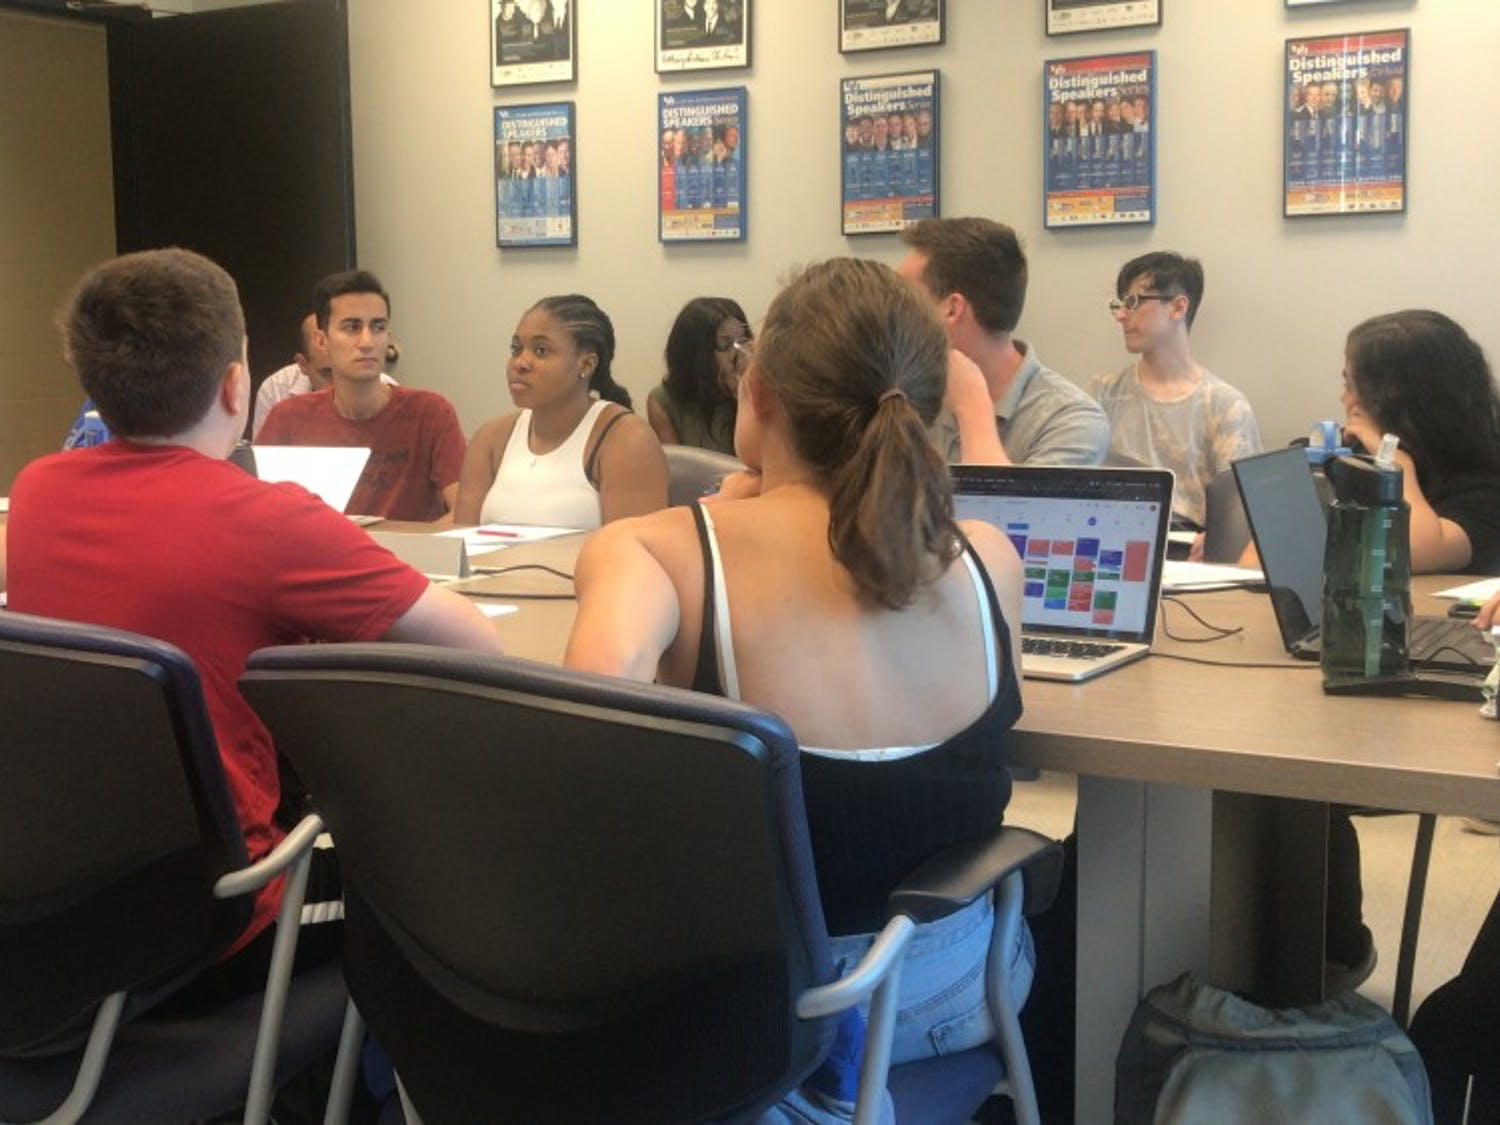 Josh Korman, Student Association's attorney, attended the Board of Directors meeting on Thursday to discuss the changes to SA with it becoming a not-for-profit.